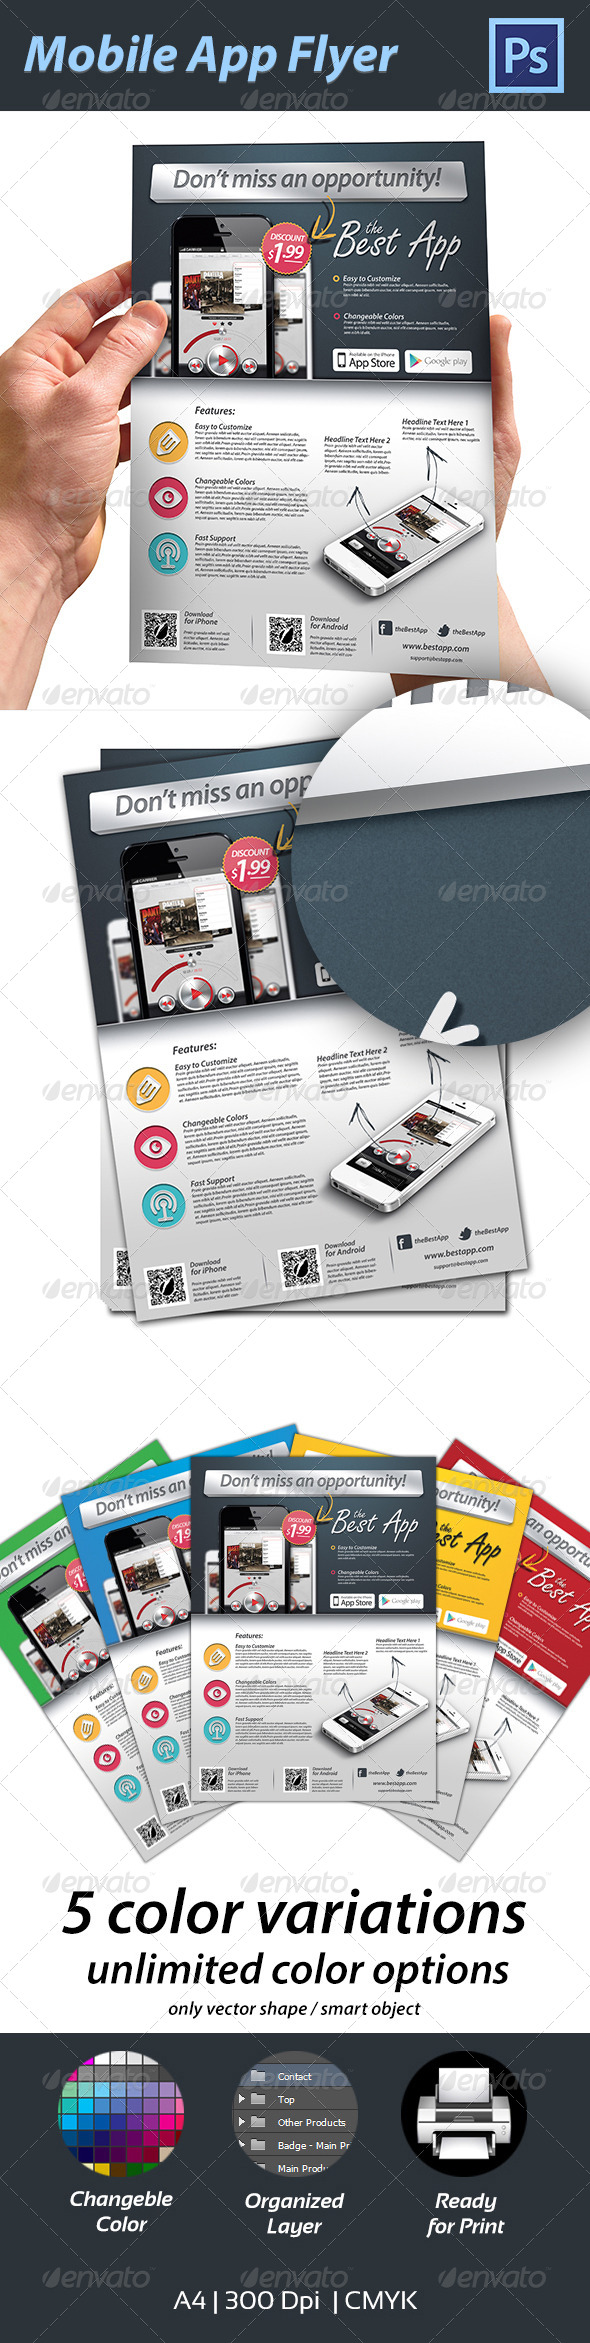 GraphicRiver Mobile App Flyer 4459153